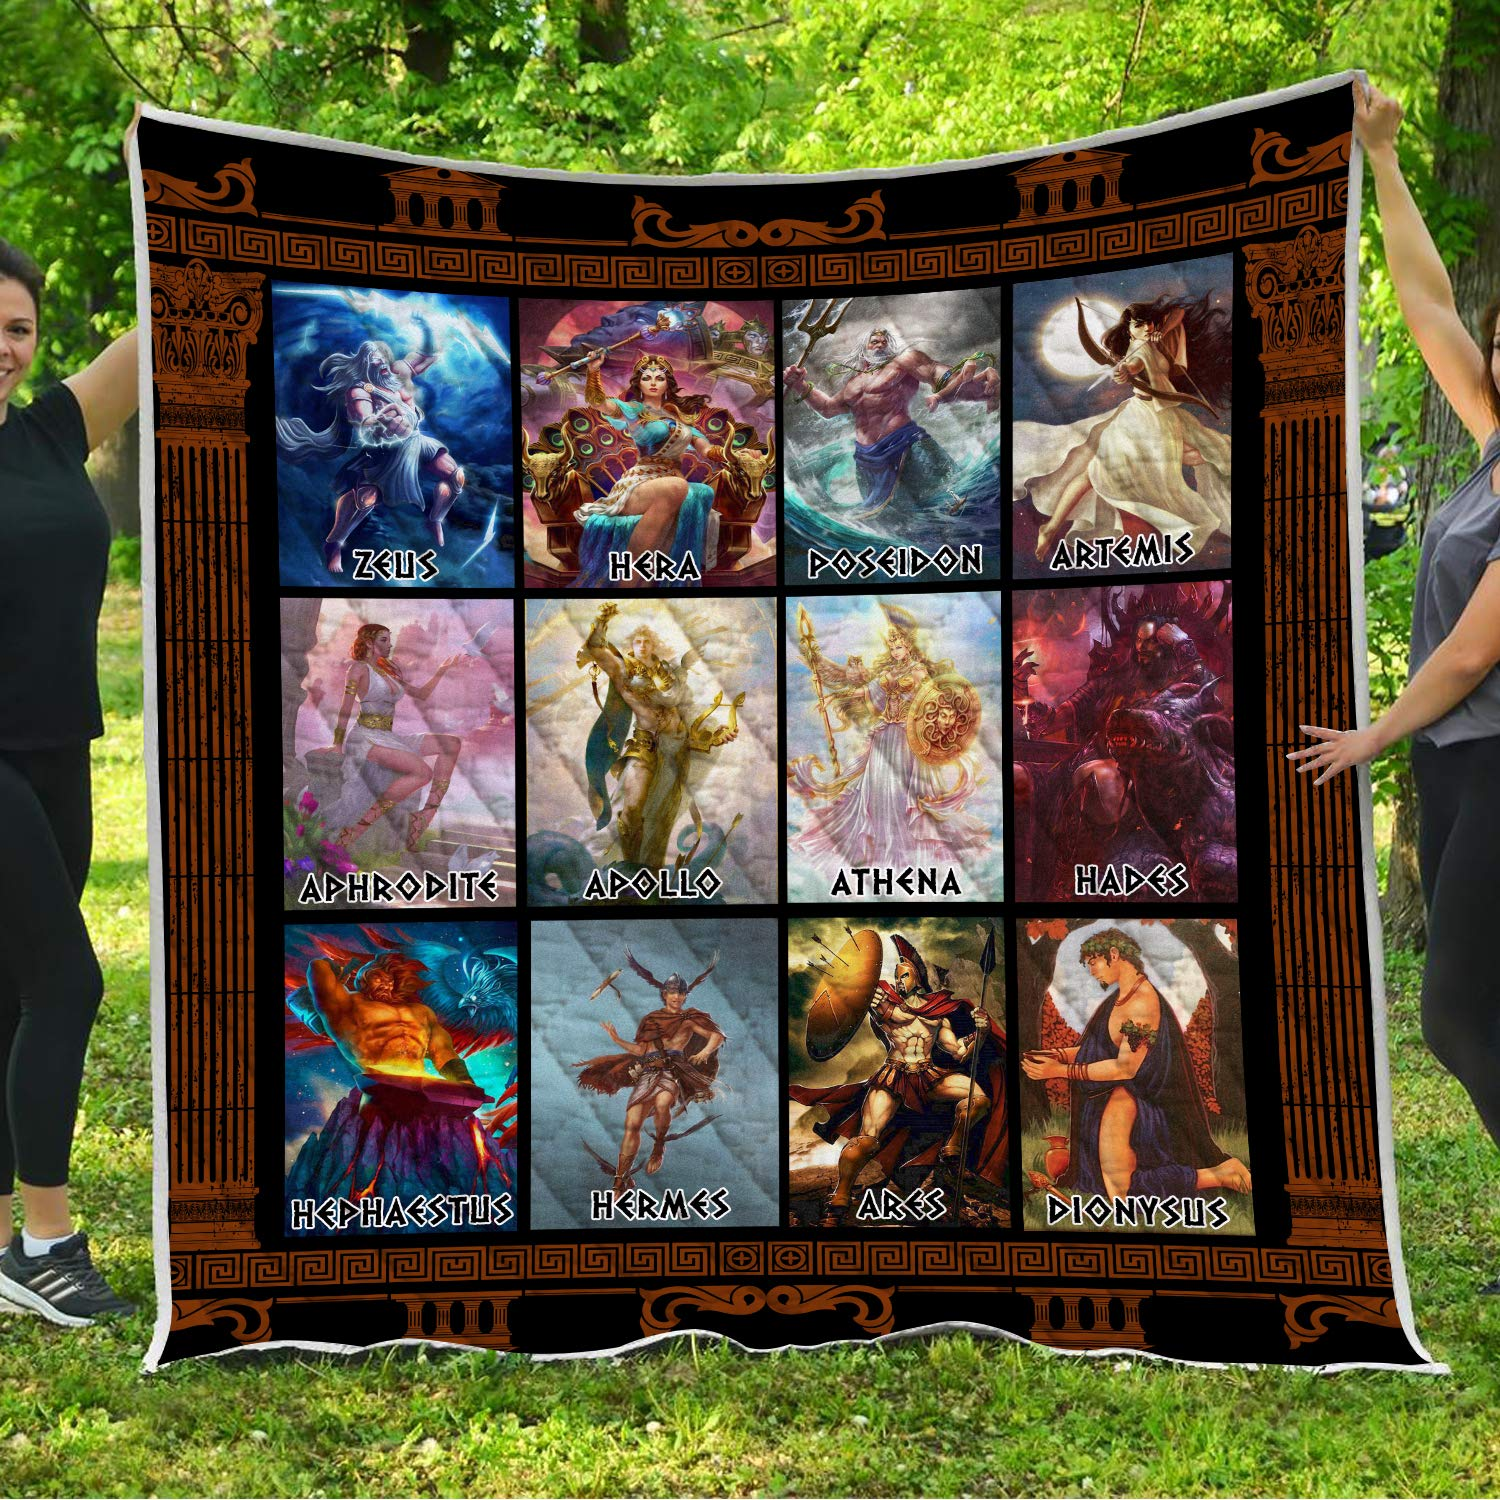 VTH Global Greek Mythological Gods Quilt Pattern Blanket Comforters with Reversible Cotton King Queen Full Twin Size Quilted Romantic Birthday Wedding for Wife from Husband Kids by VTH Global